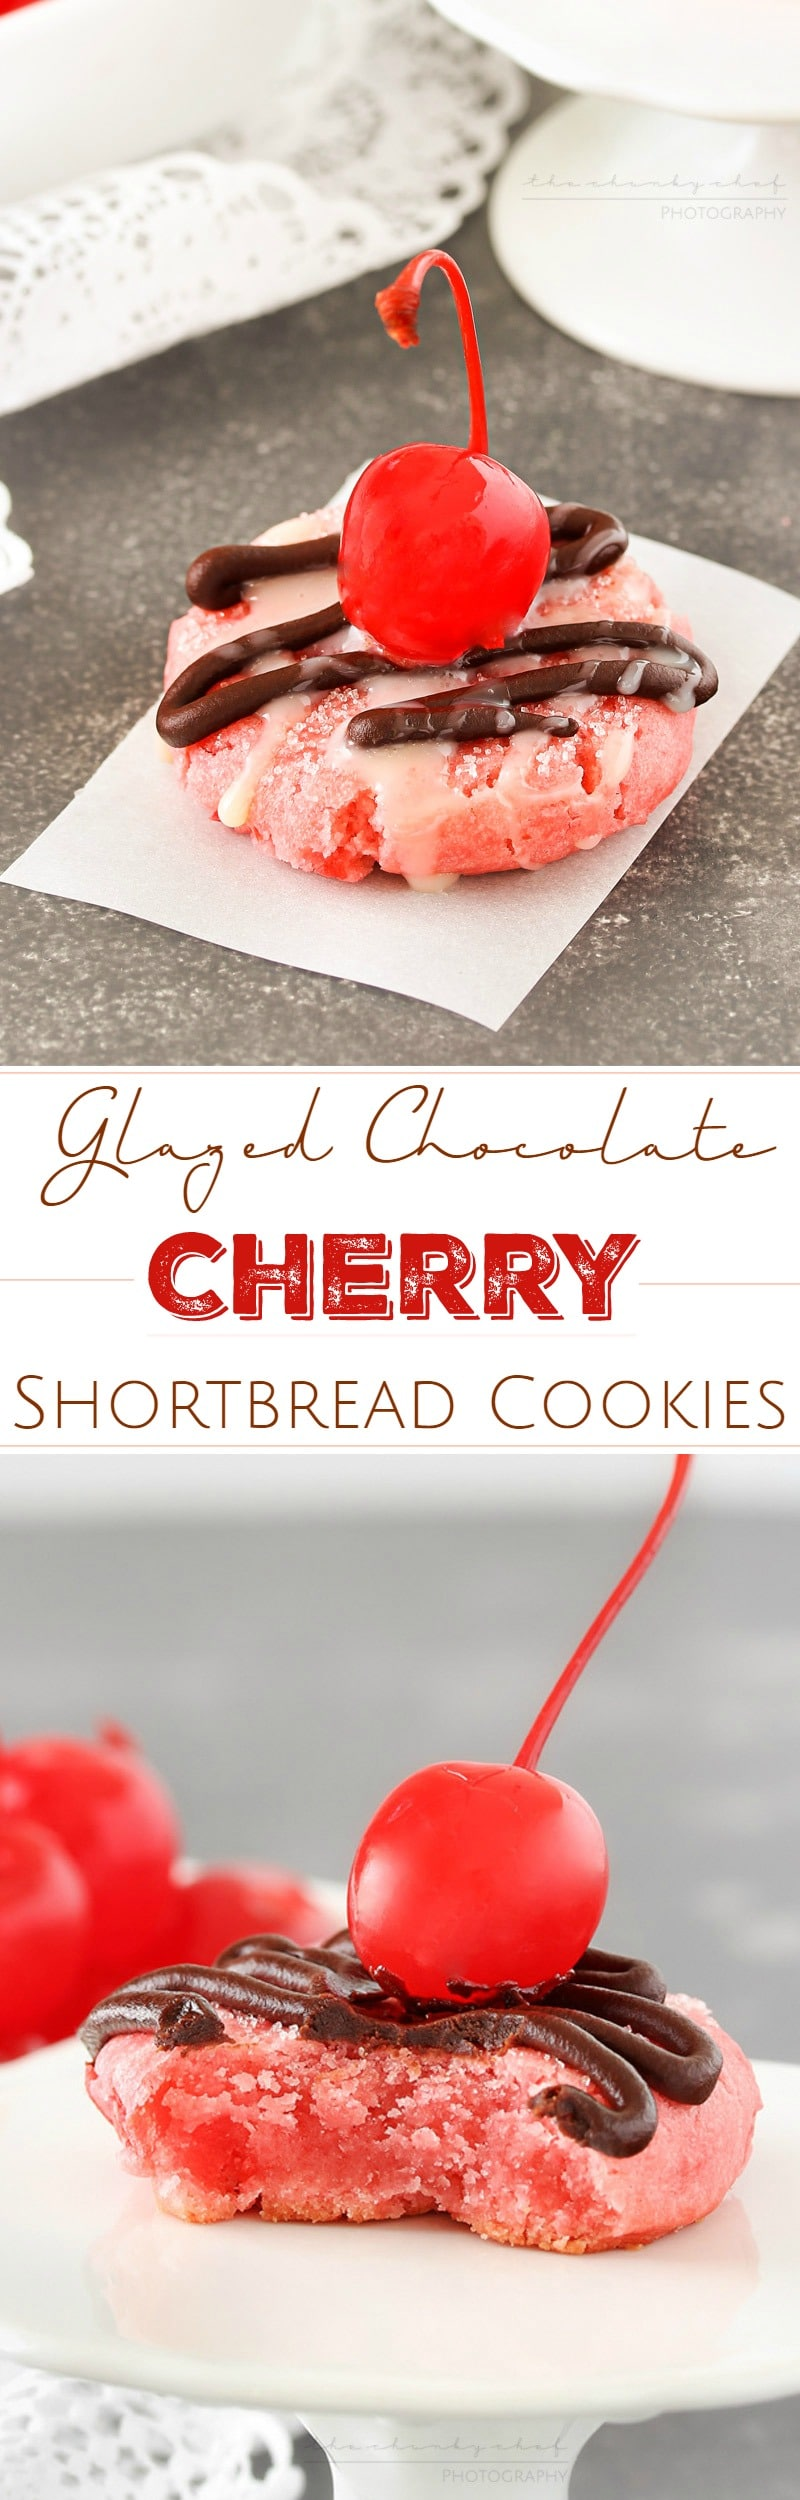 Glazed Chocolate Cherry Cookies | Soft and buttery cherry cookies, made with cherry juice and cherry pieces, are topped with a drizzle of melted chocolate, sweet glaze, and a cherry! | http://thechunkychef.com